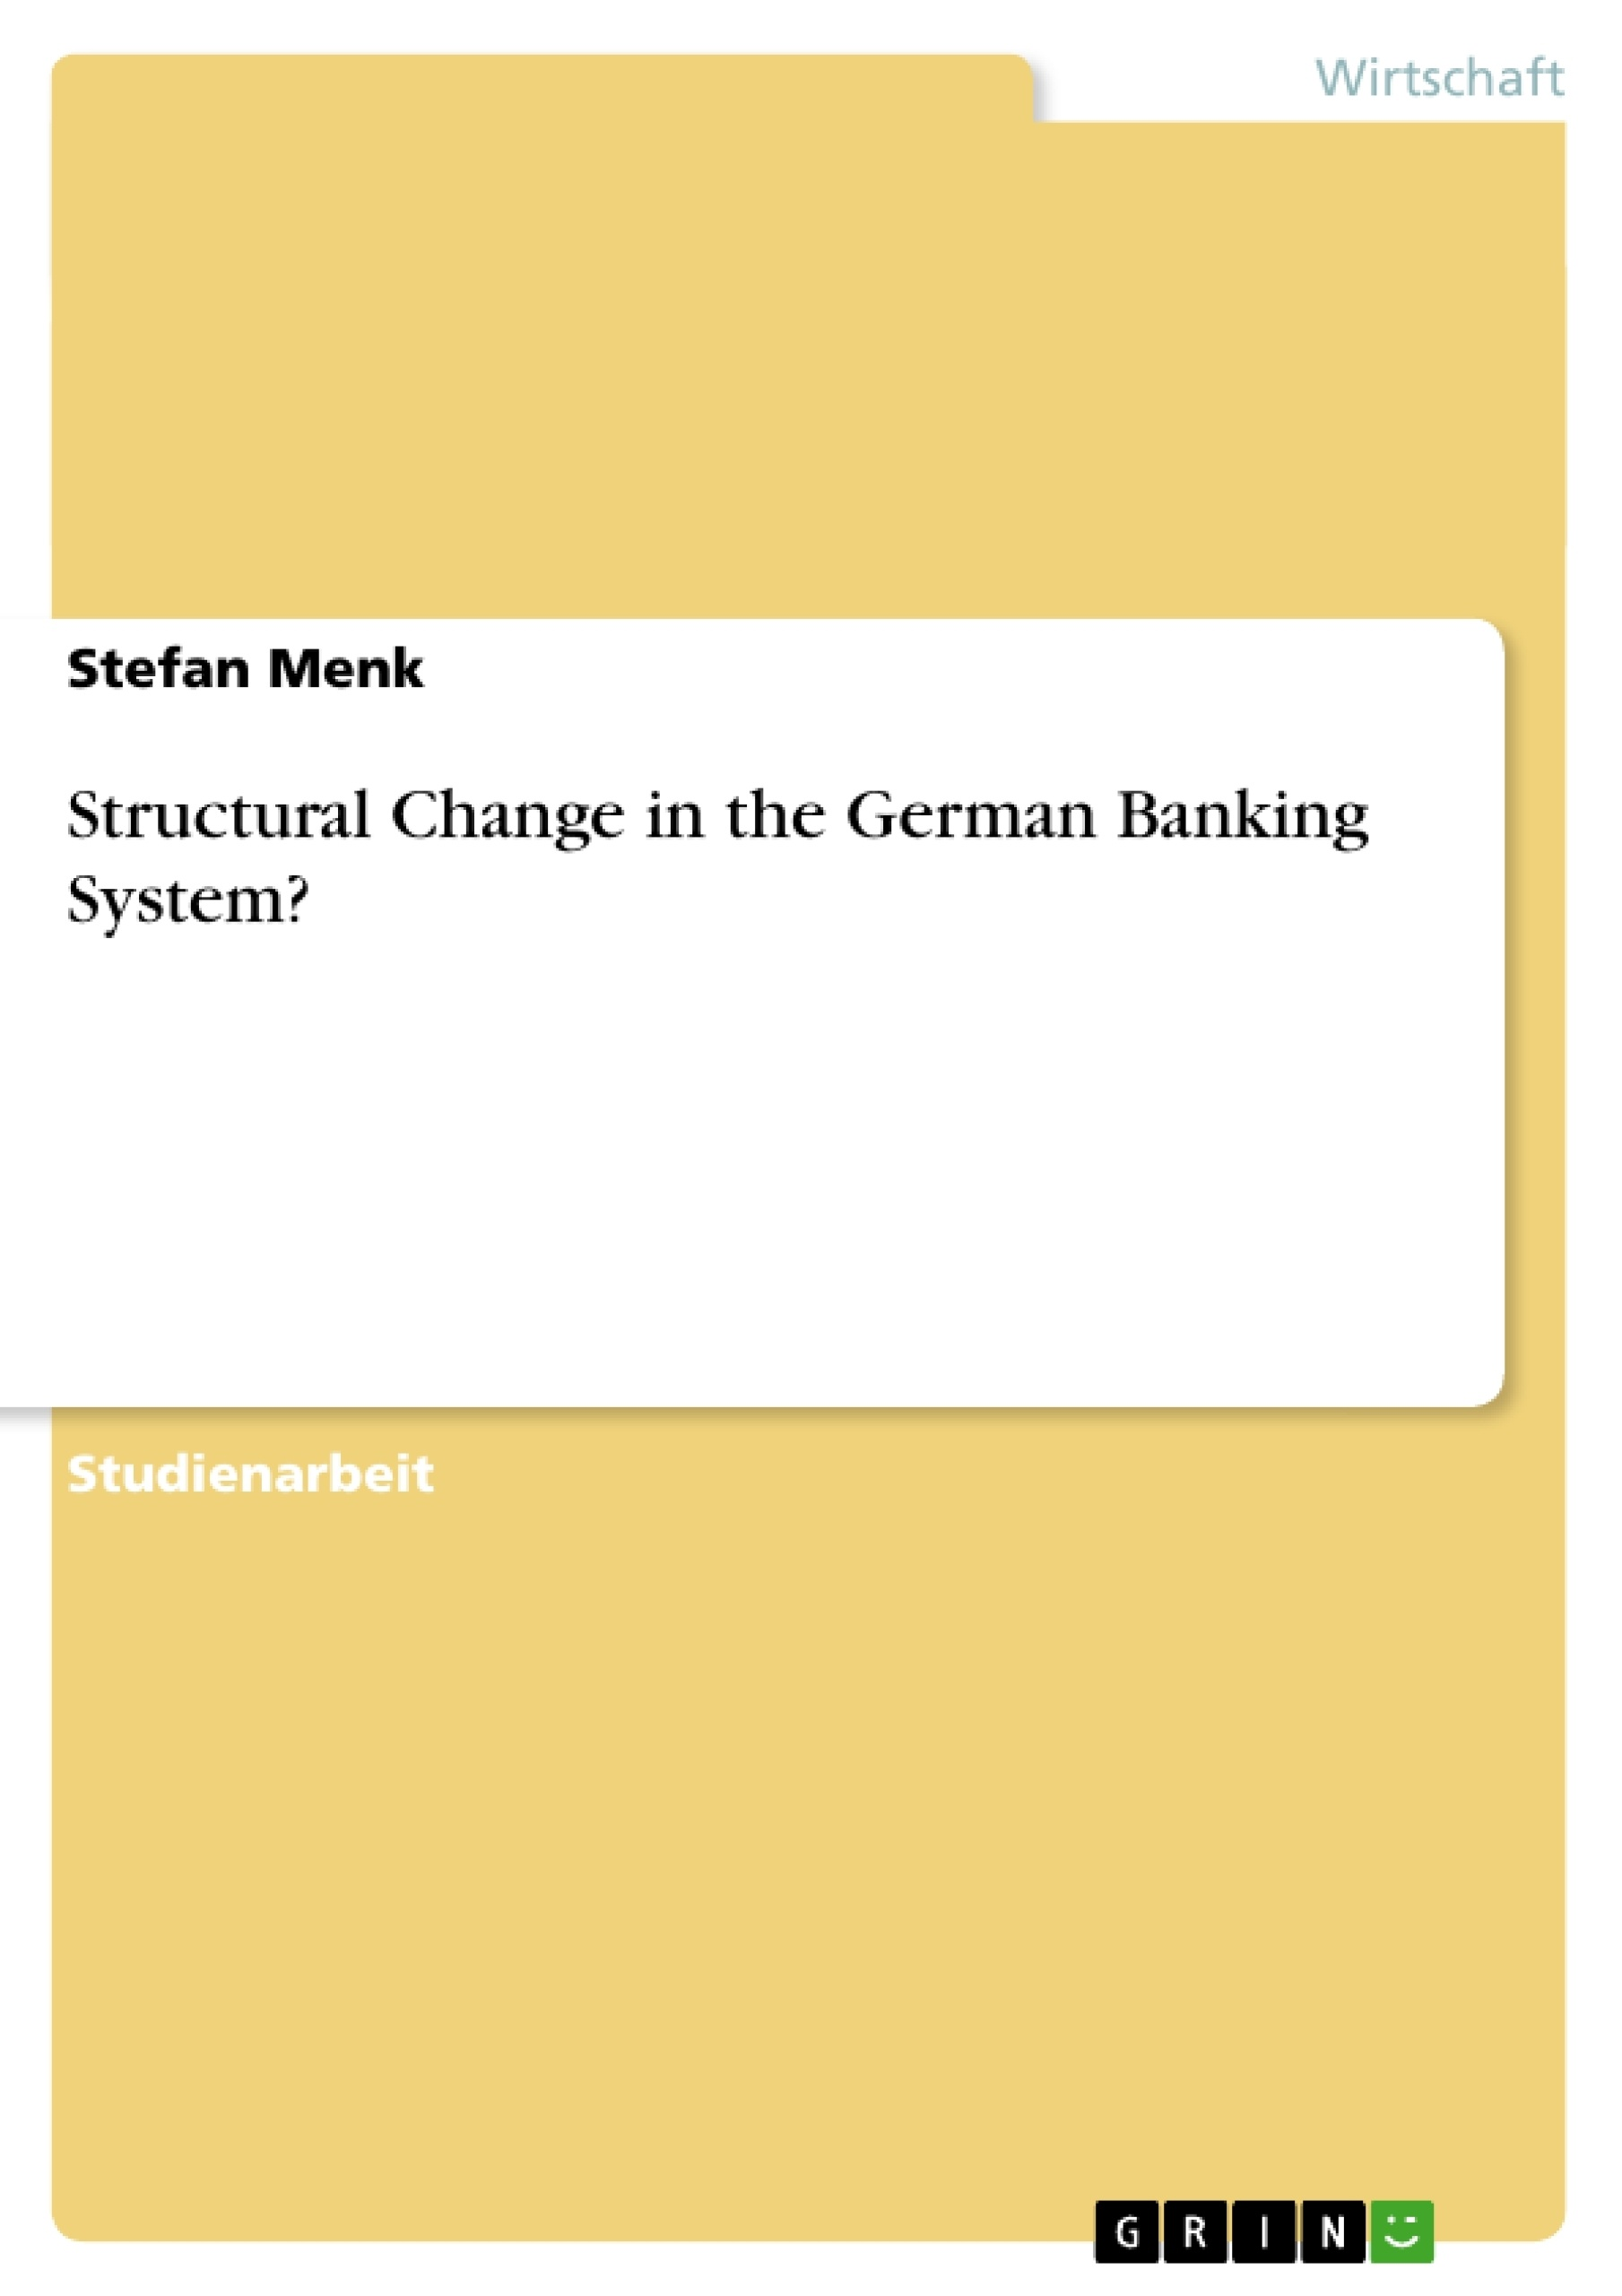 Titel: Structural Change in the German Banking System?